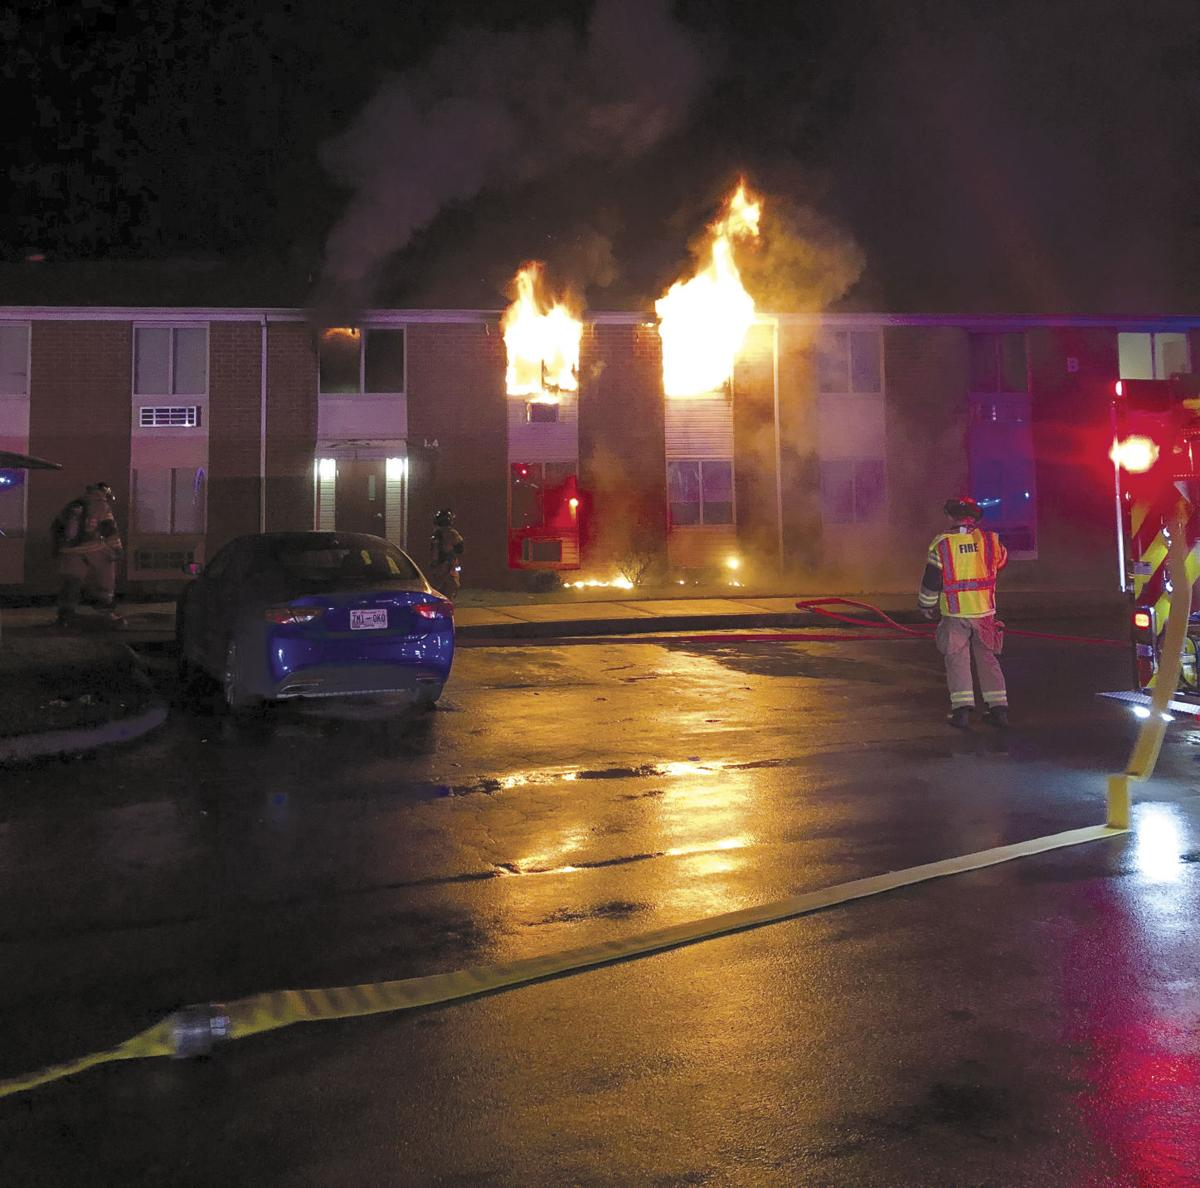 East Gate Apartments: Local Family Safe, Displaced By Apartment Fire